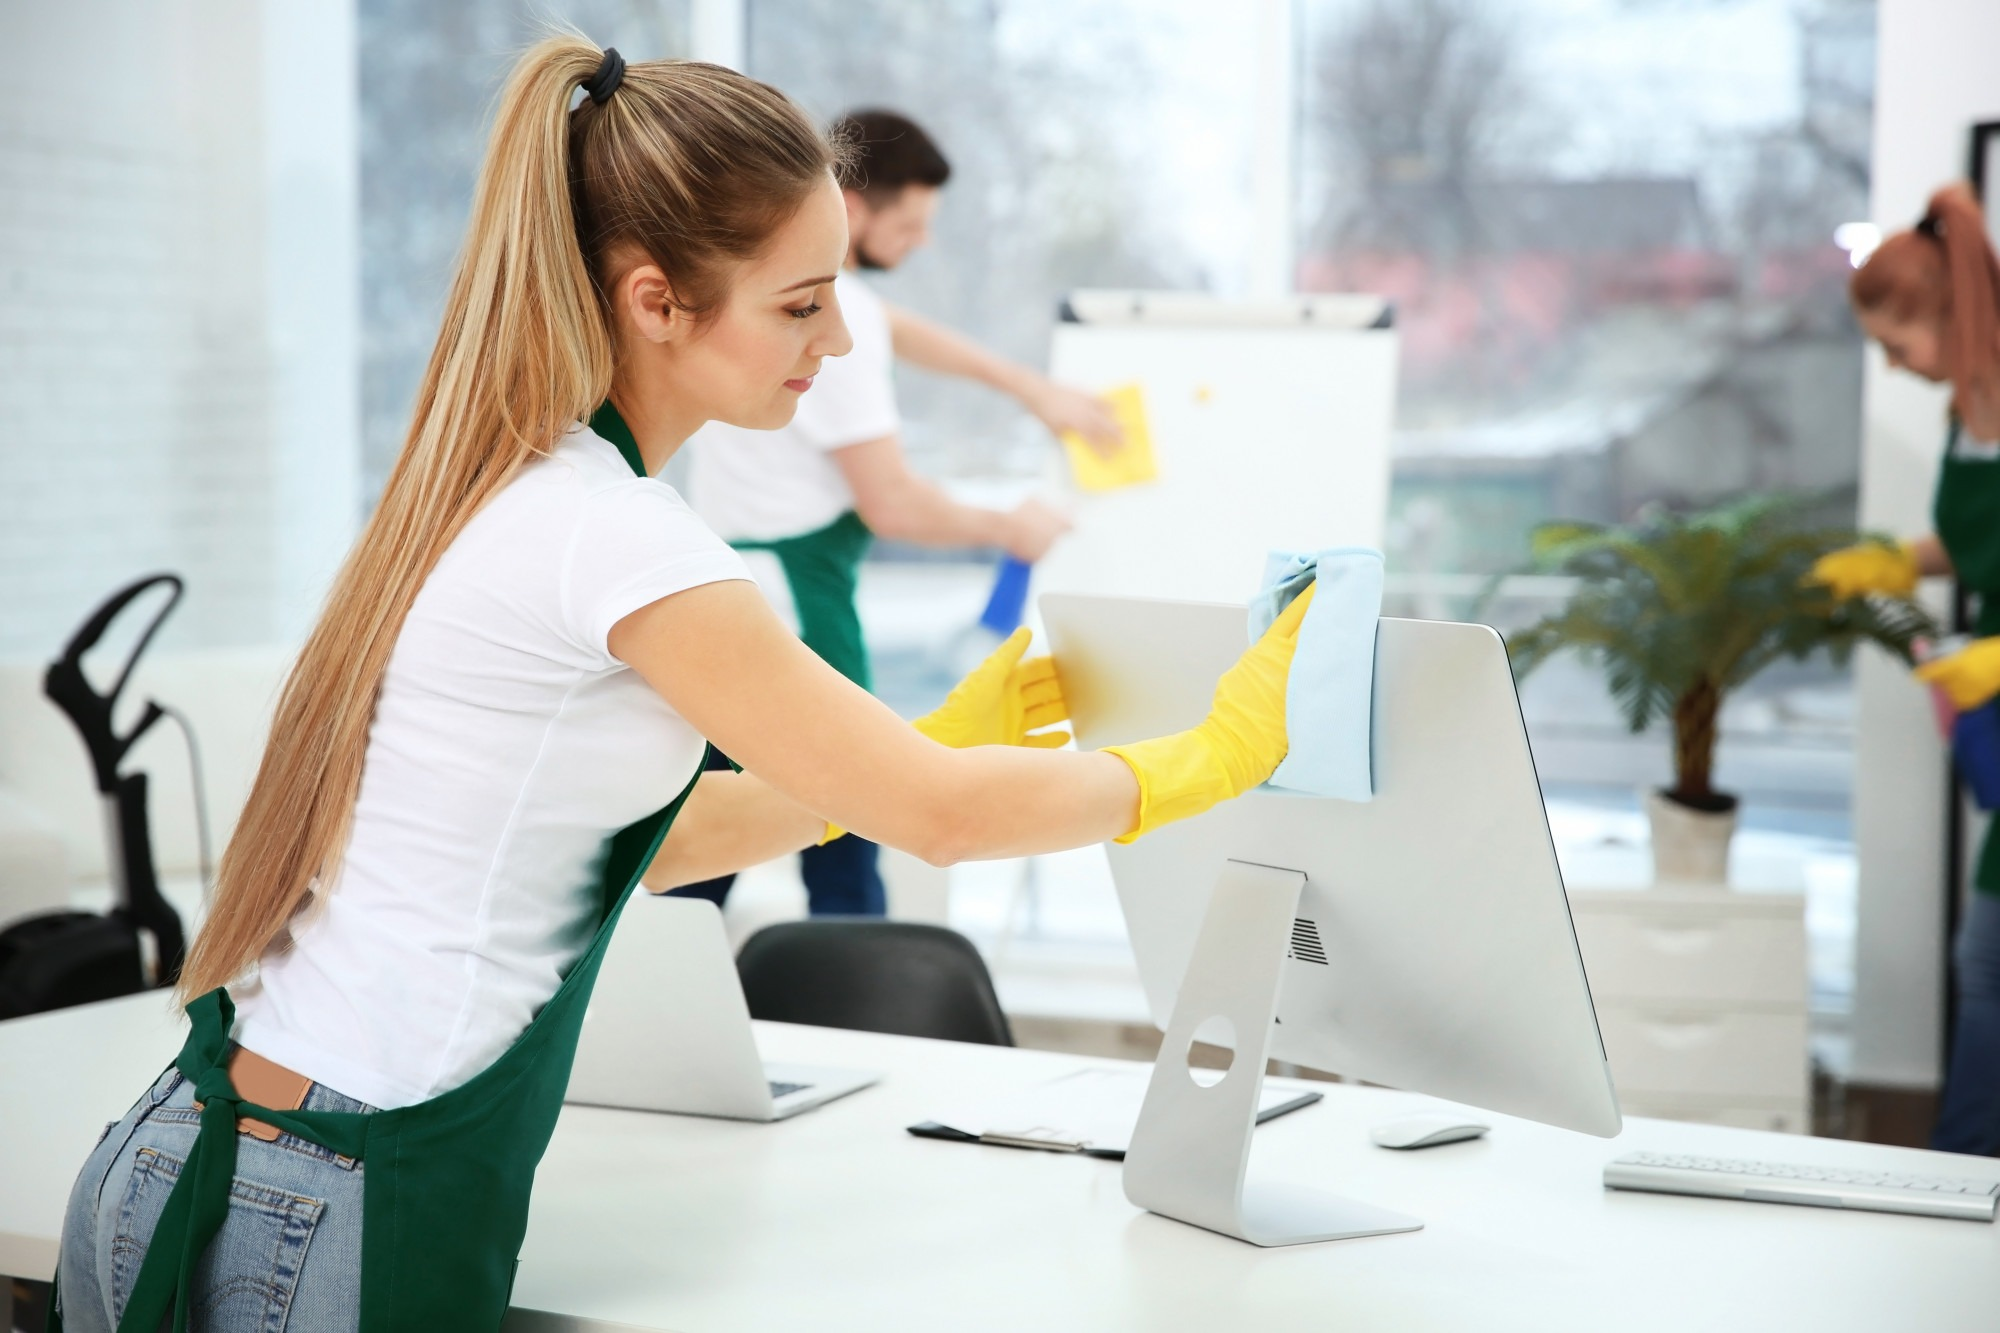 The Importance of Keeping a Clean Office